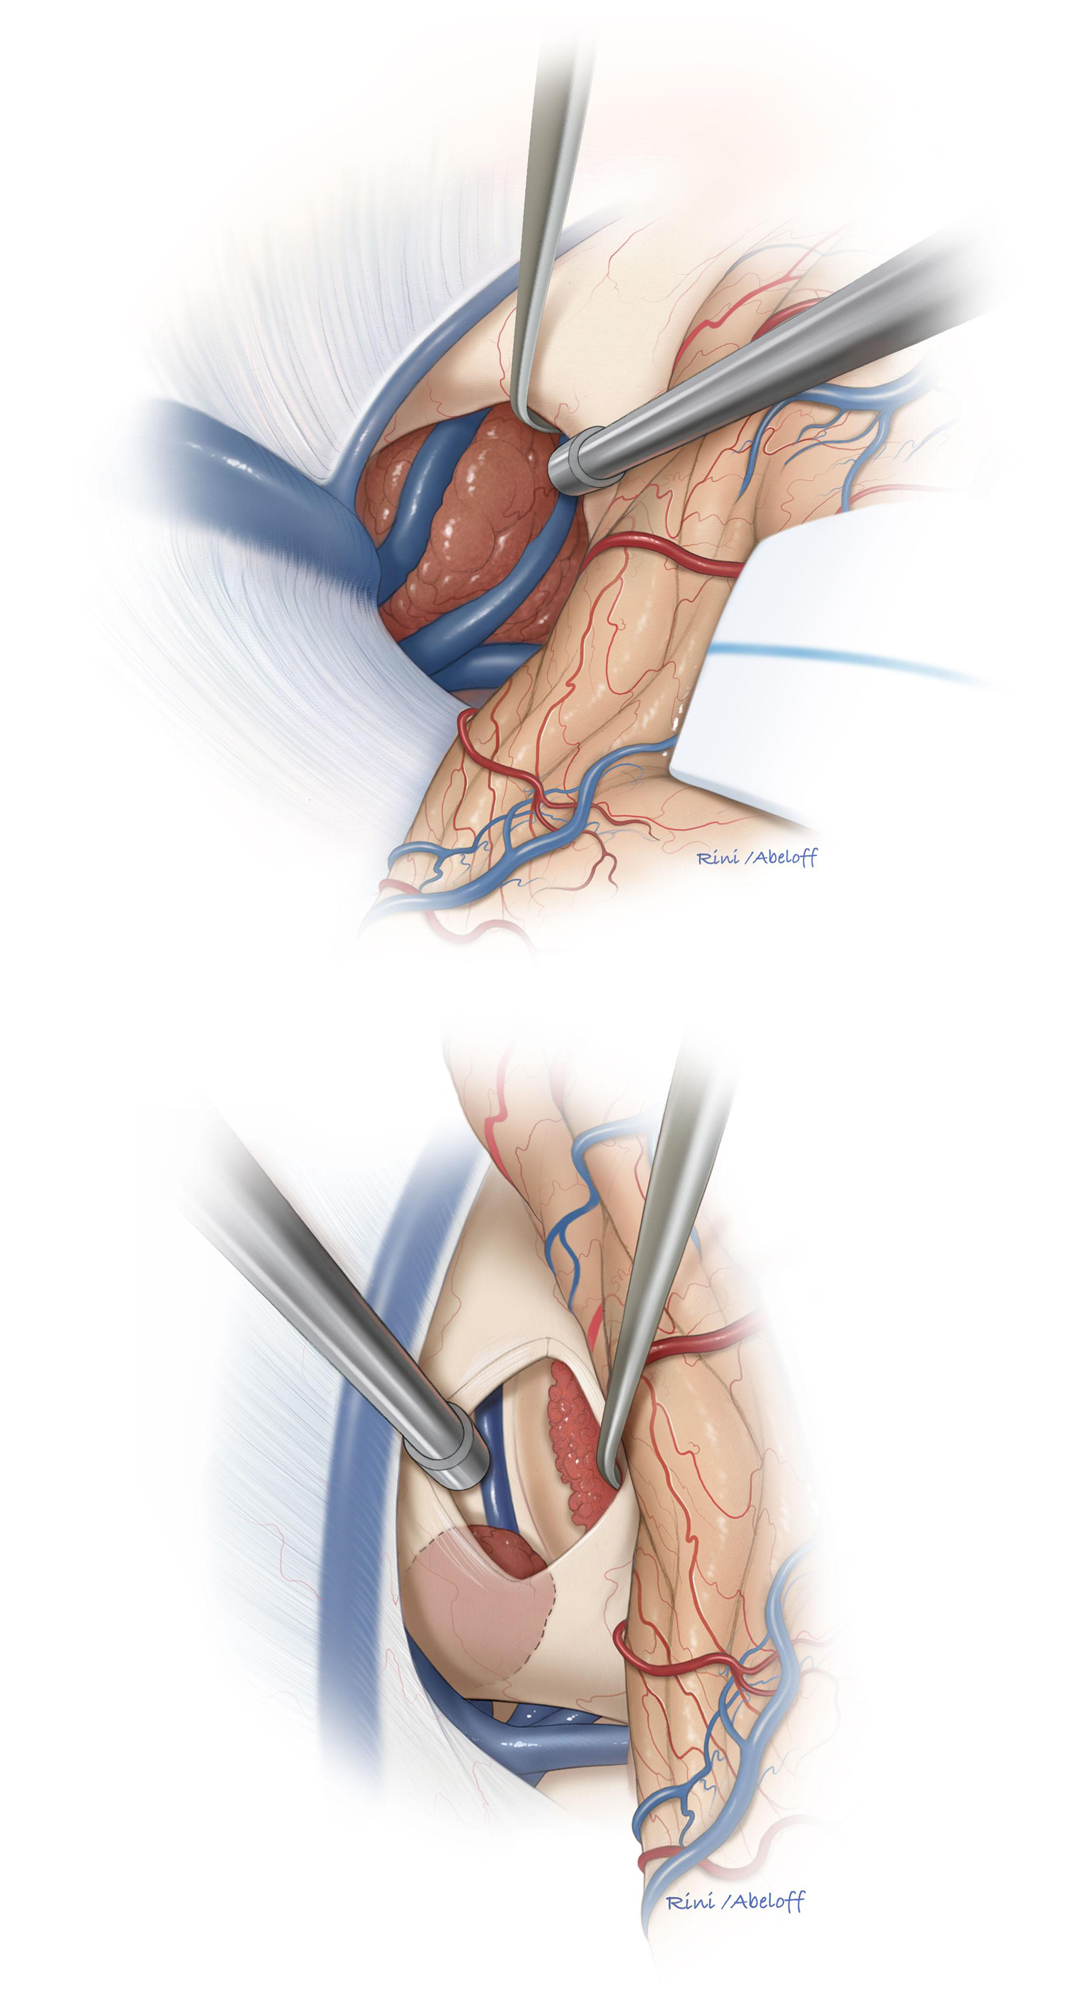 Figure 17: The splenium is mobilized and gently retracted to bring the lesion into view (Top). Alternatively, a small but affected portion of the splenium may be transected for reaching a more anterior lesion that primarily resides within the splenium (bottom).